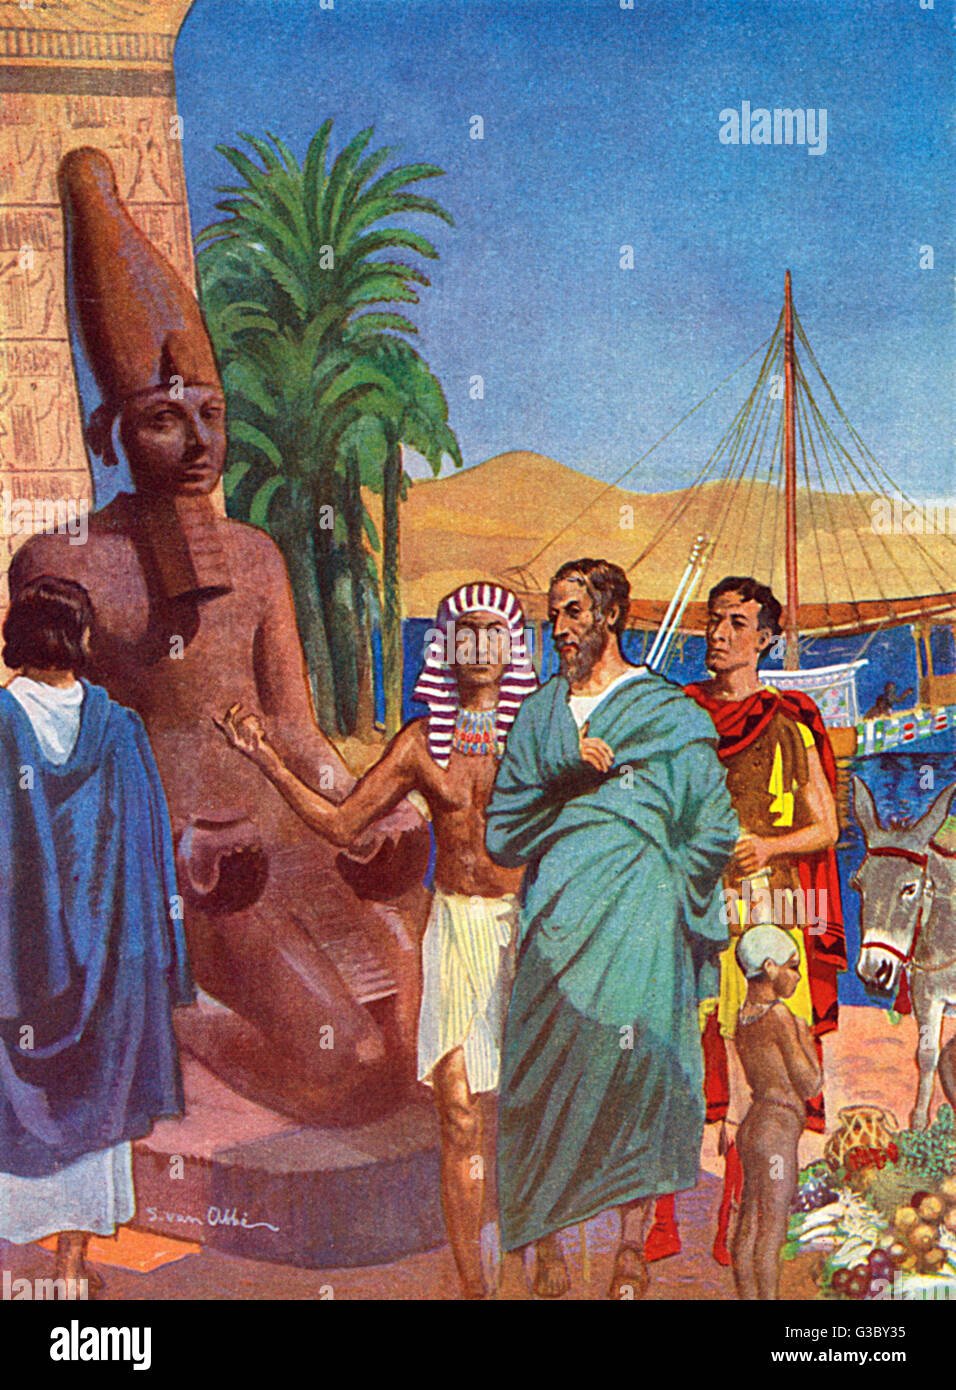 Herodotus - Ancient Greek Traveller and Historian - Visiting Aswan in Ancient Egypt. His eye-witness accounts indicate - Stock Image